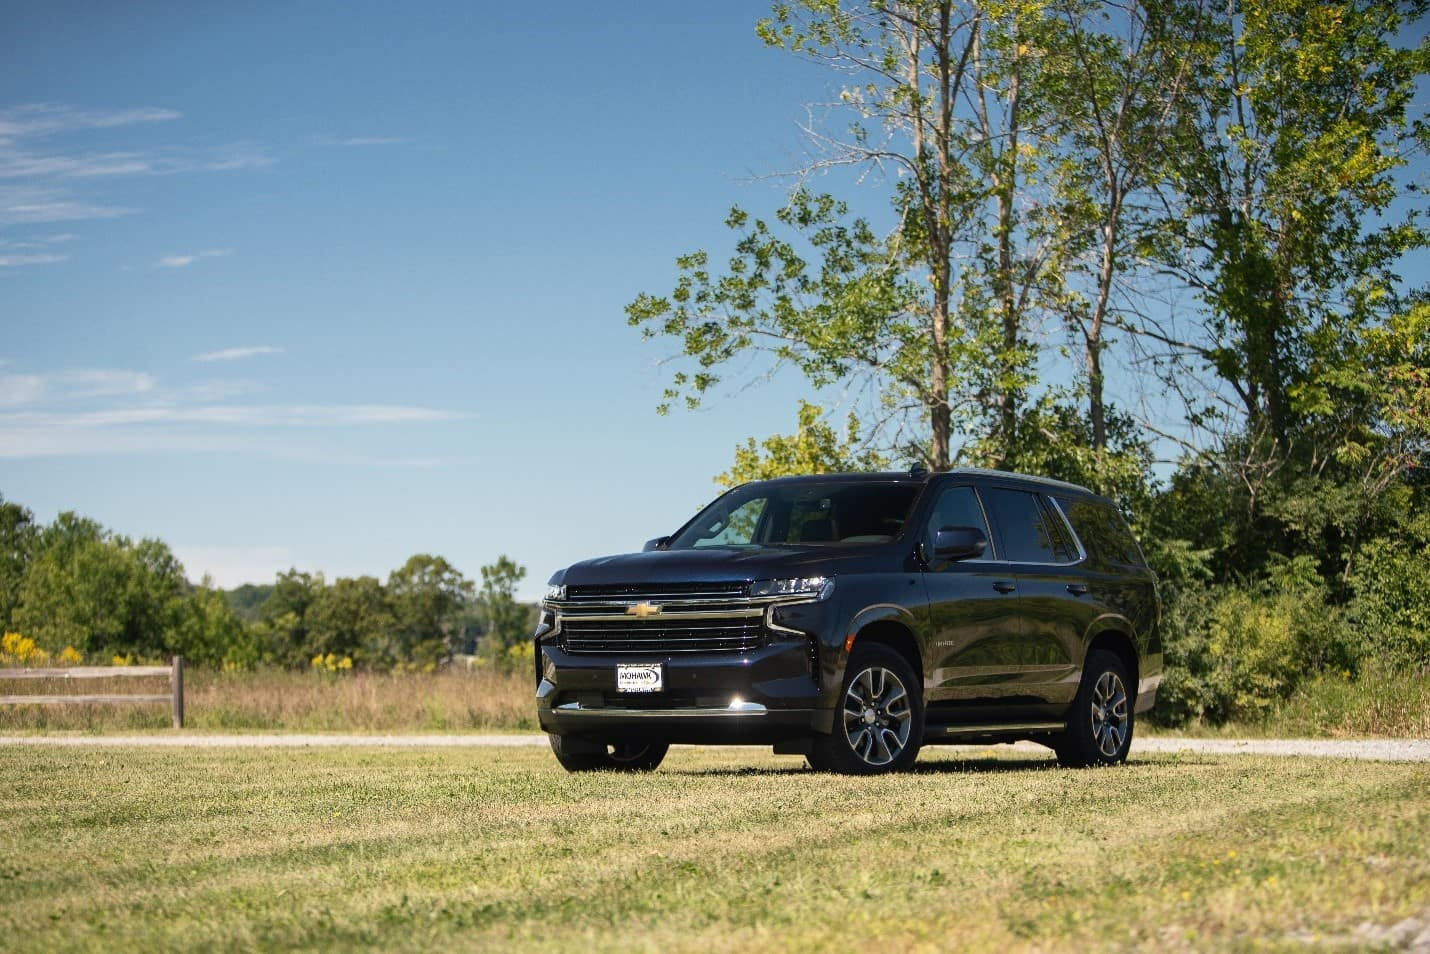 new black 2021 Chevy Tahoe parked in an open field with trees in the background